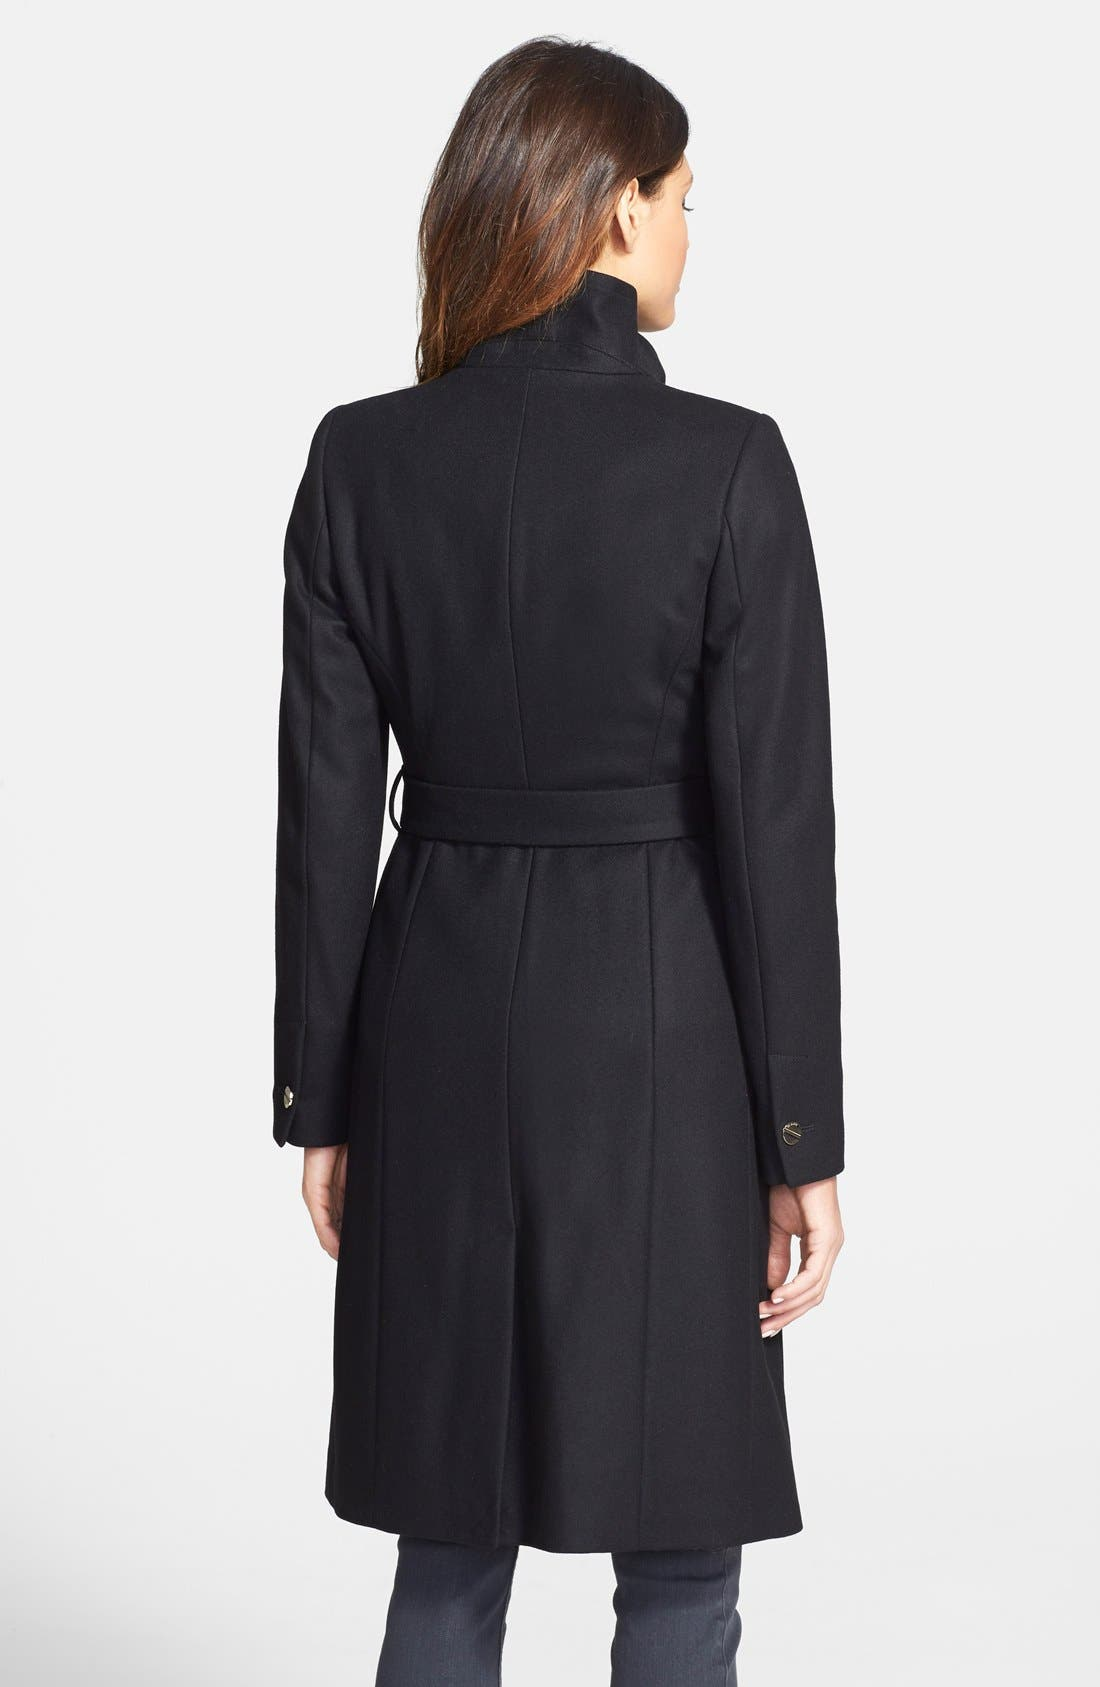 'Nevia' Stand Collar Belted Wrap Coat,                             Alternate thumbnail 3, color,                             001